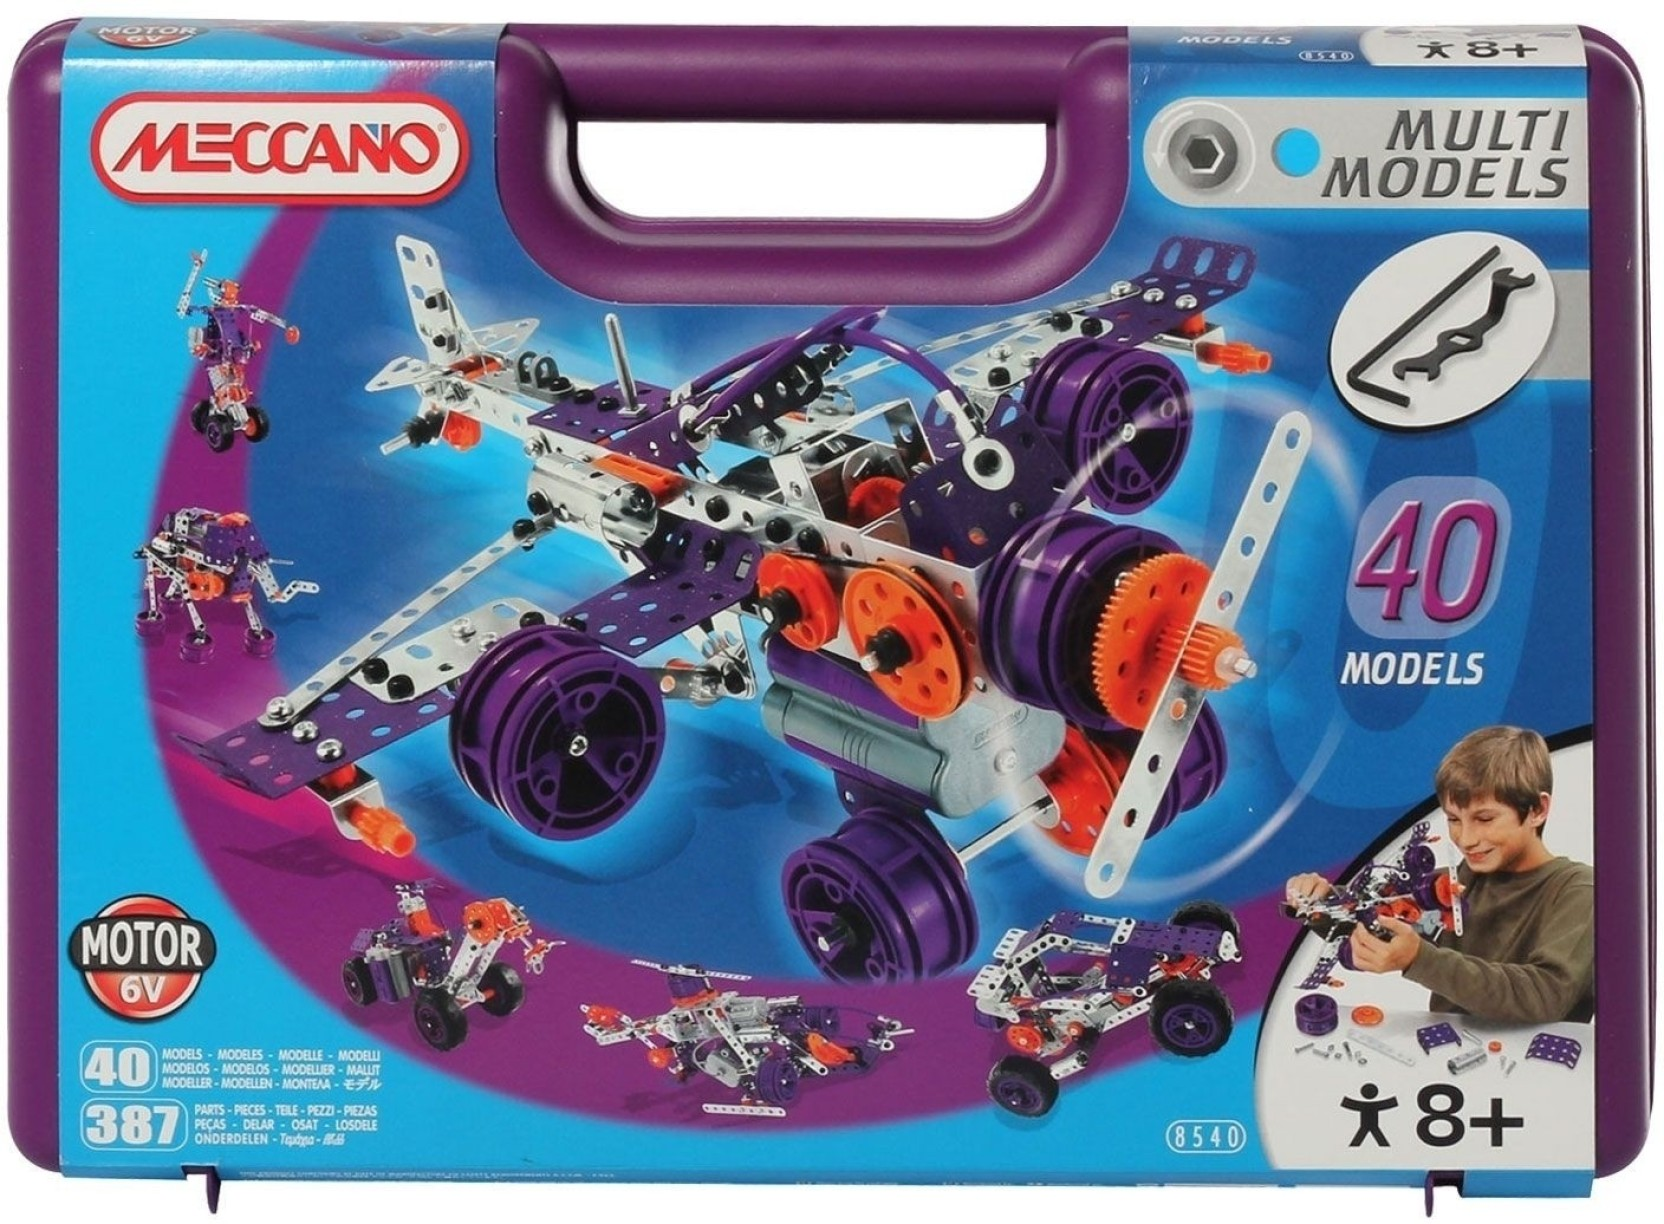 Meccano 40 Model Set Shop For Products In Control Your Models Or Anything Else From Windows Pc Share